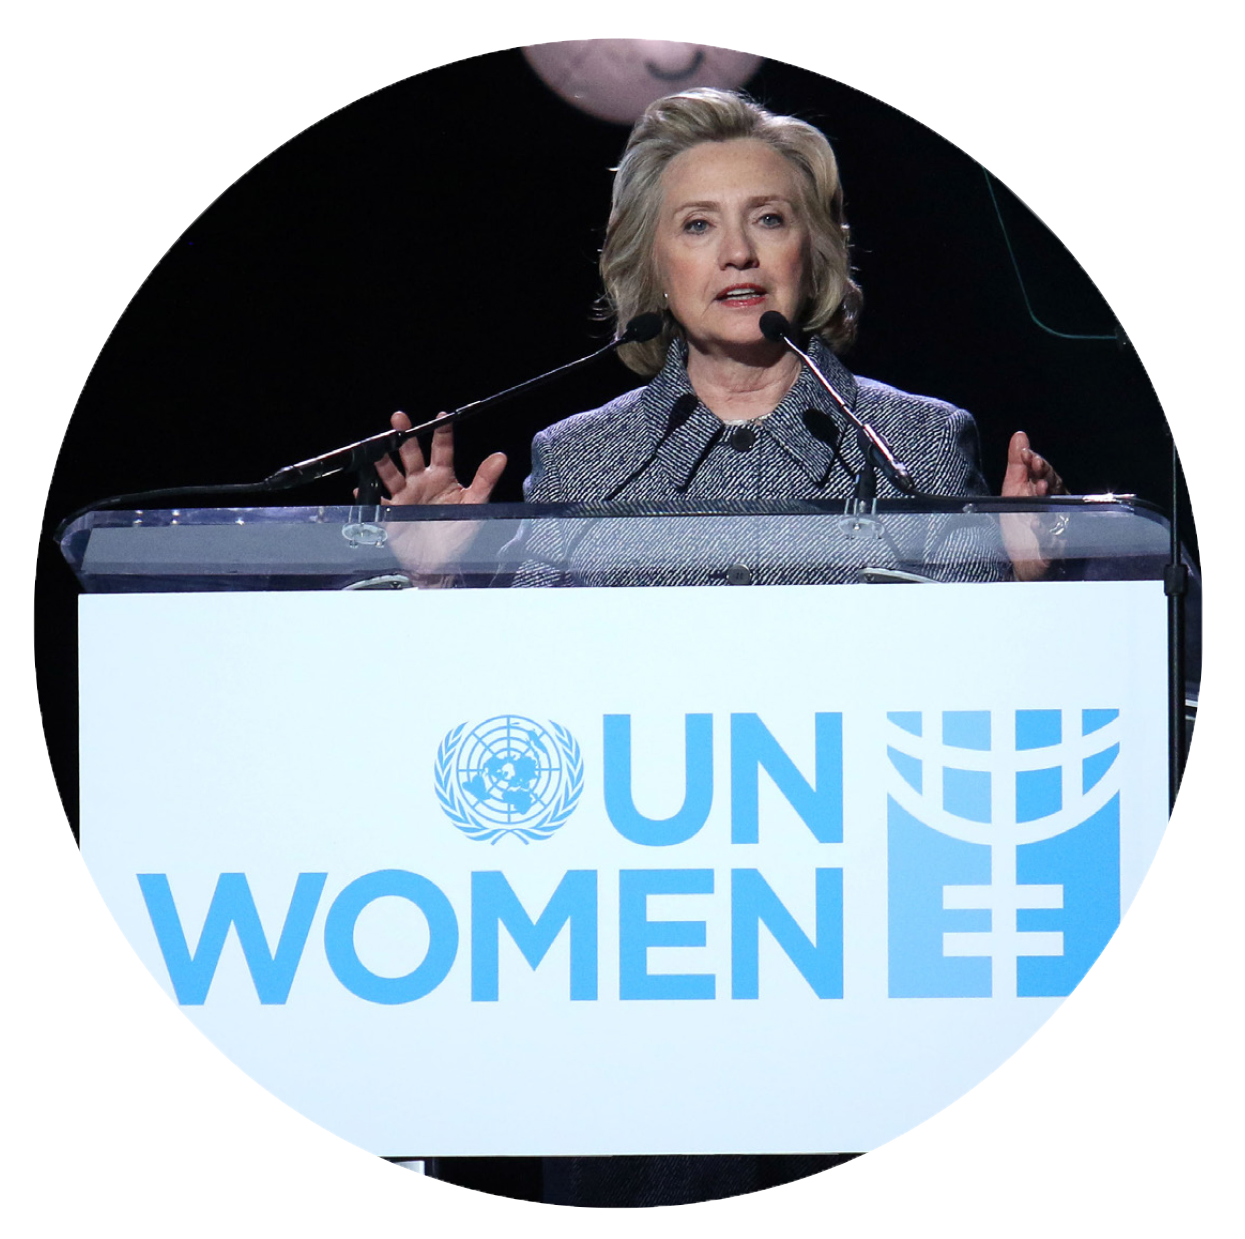 Hillary Clinton America v. The World in Gender Equality One on One Answering The Call To Service Is The United States Ready For Its First Female President?